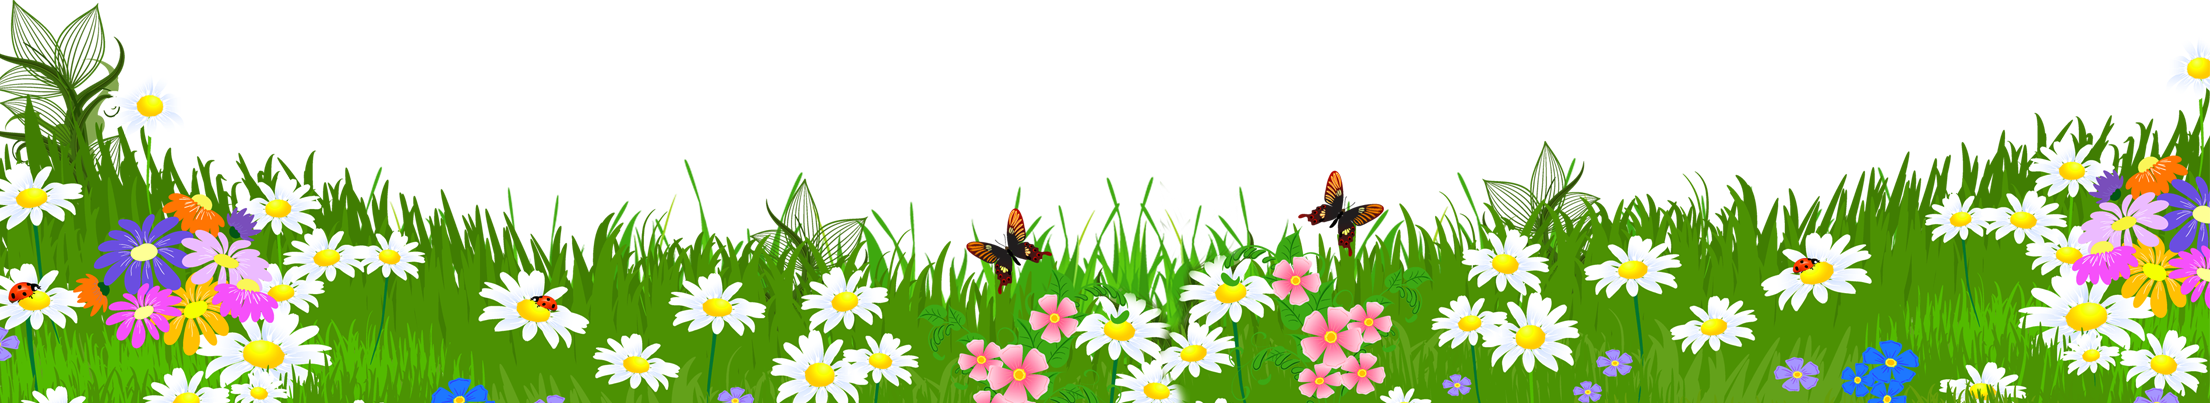 Grass ground with flowers png clipart crafts sewing for Grass flower